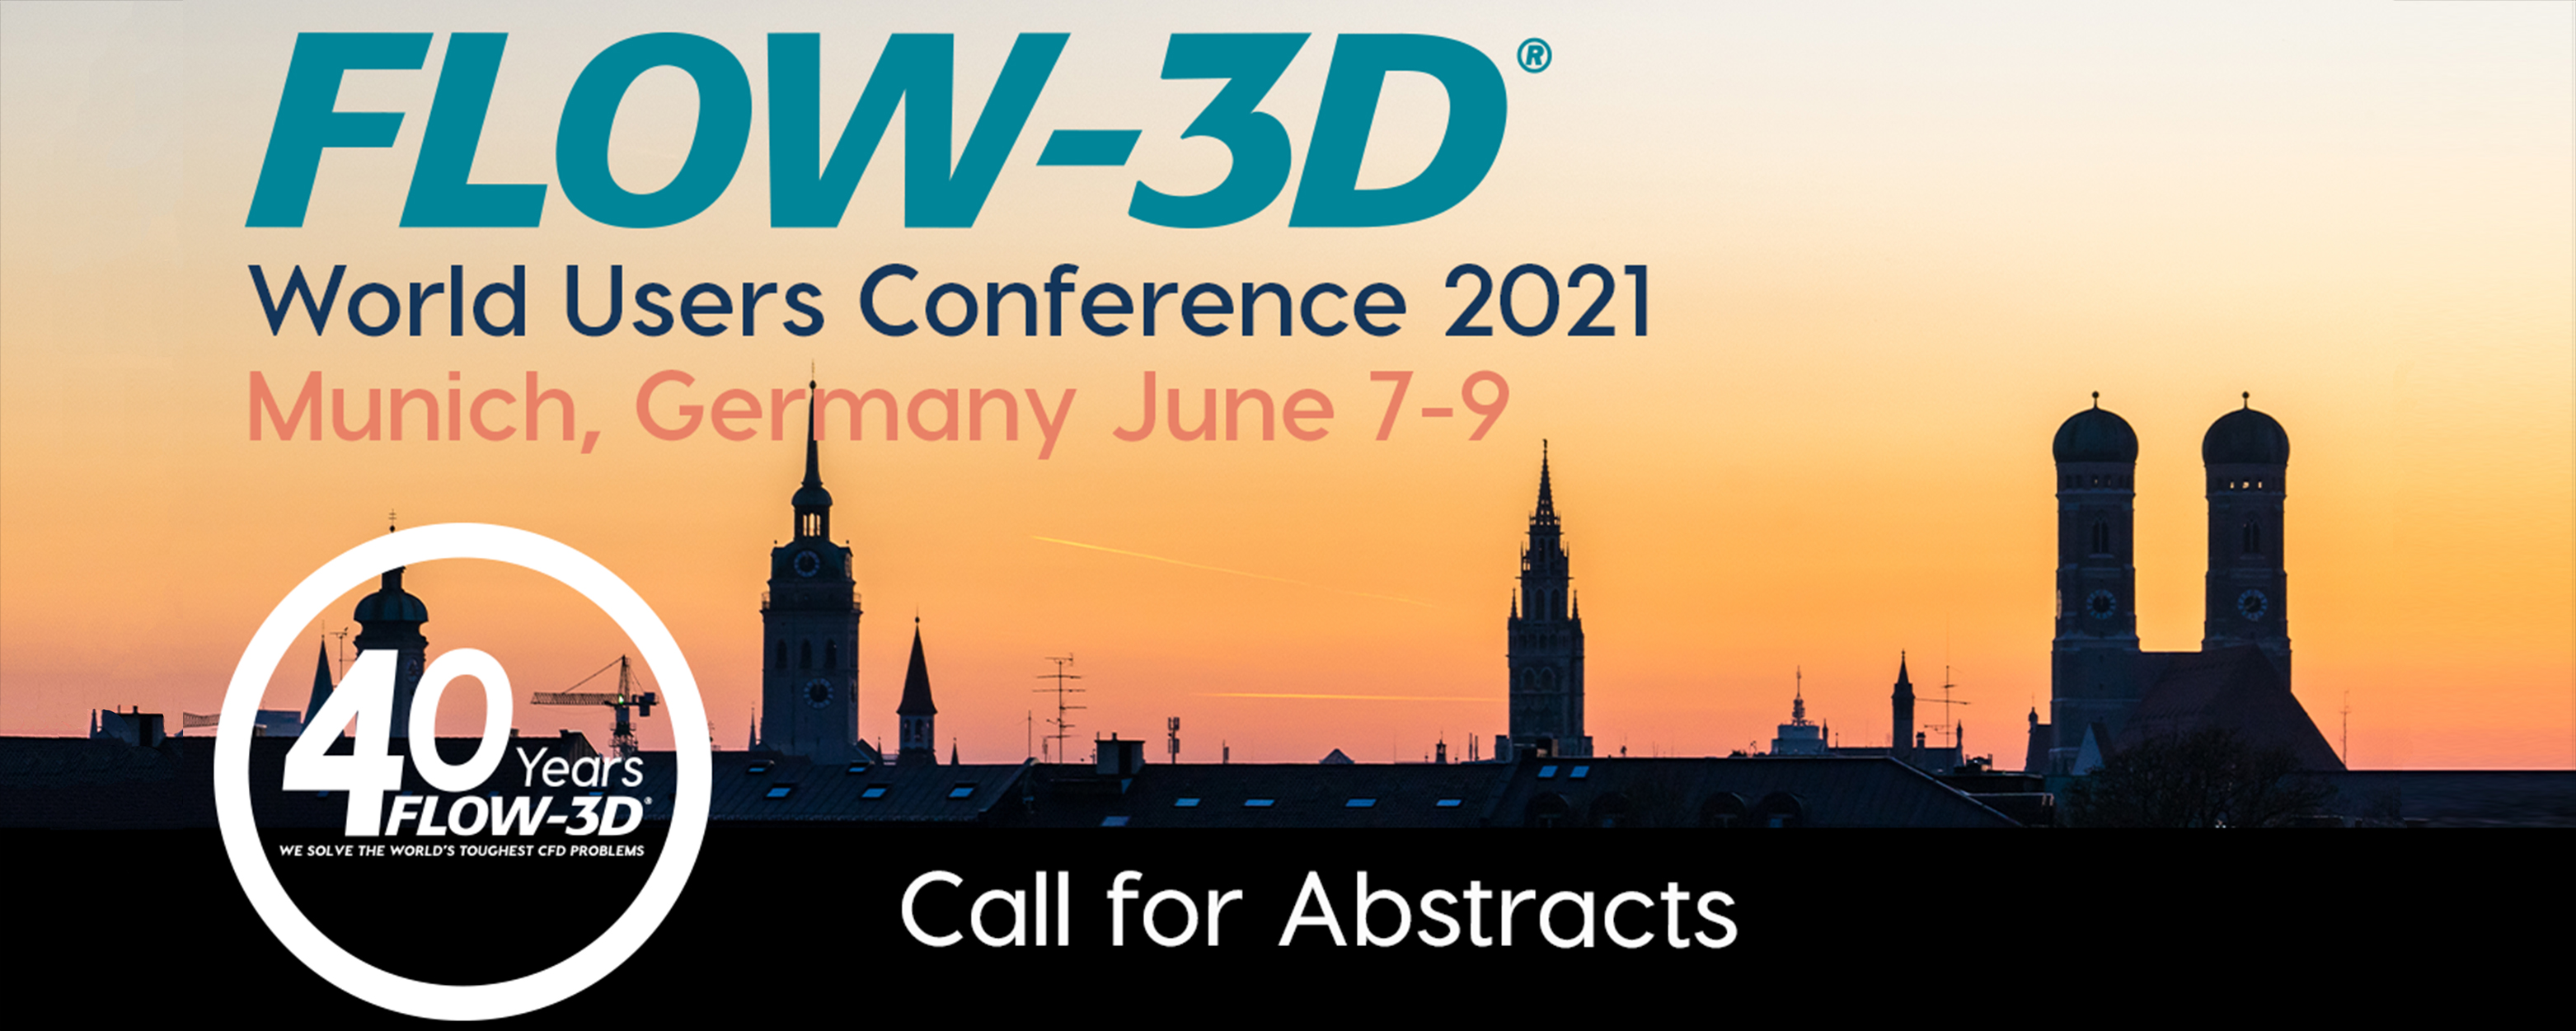 FlOW-3D World Users Conference 2020